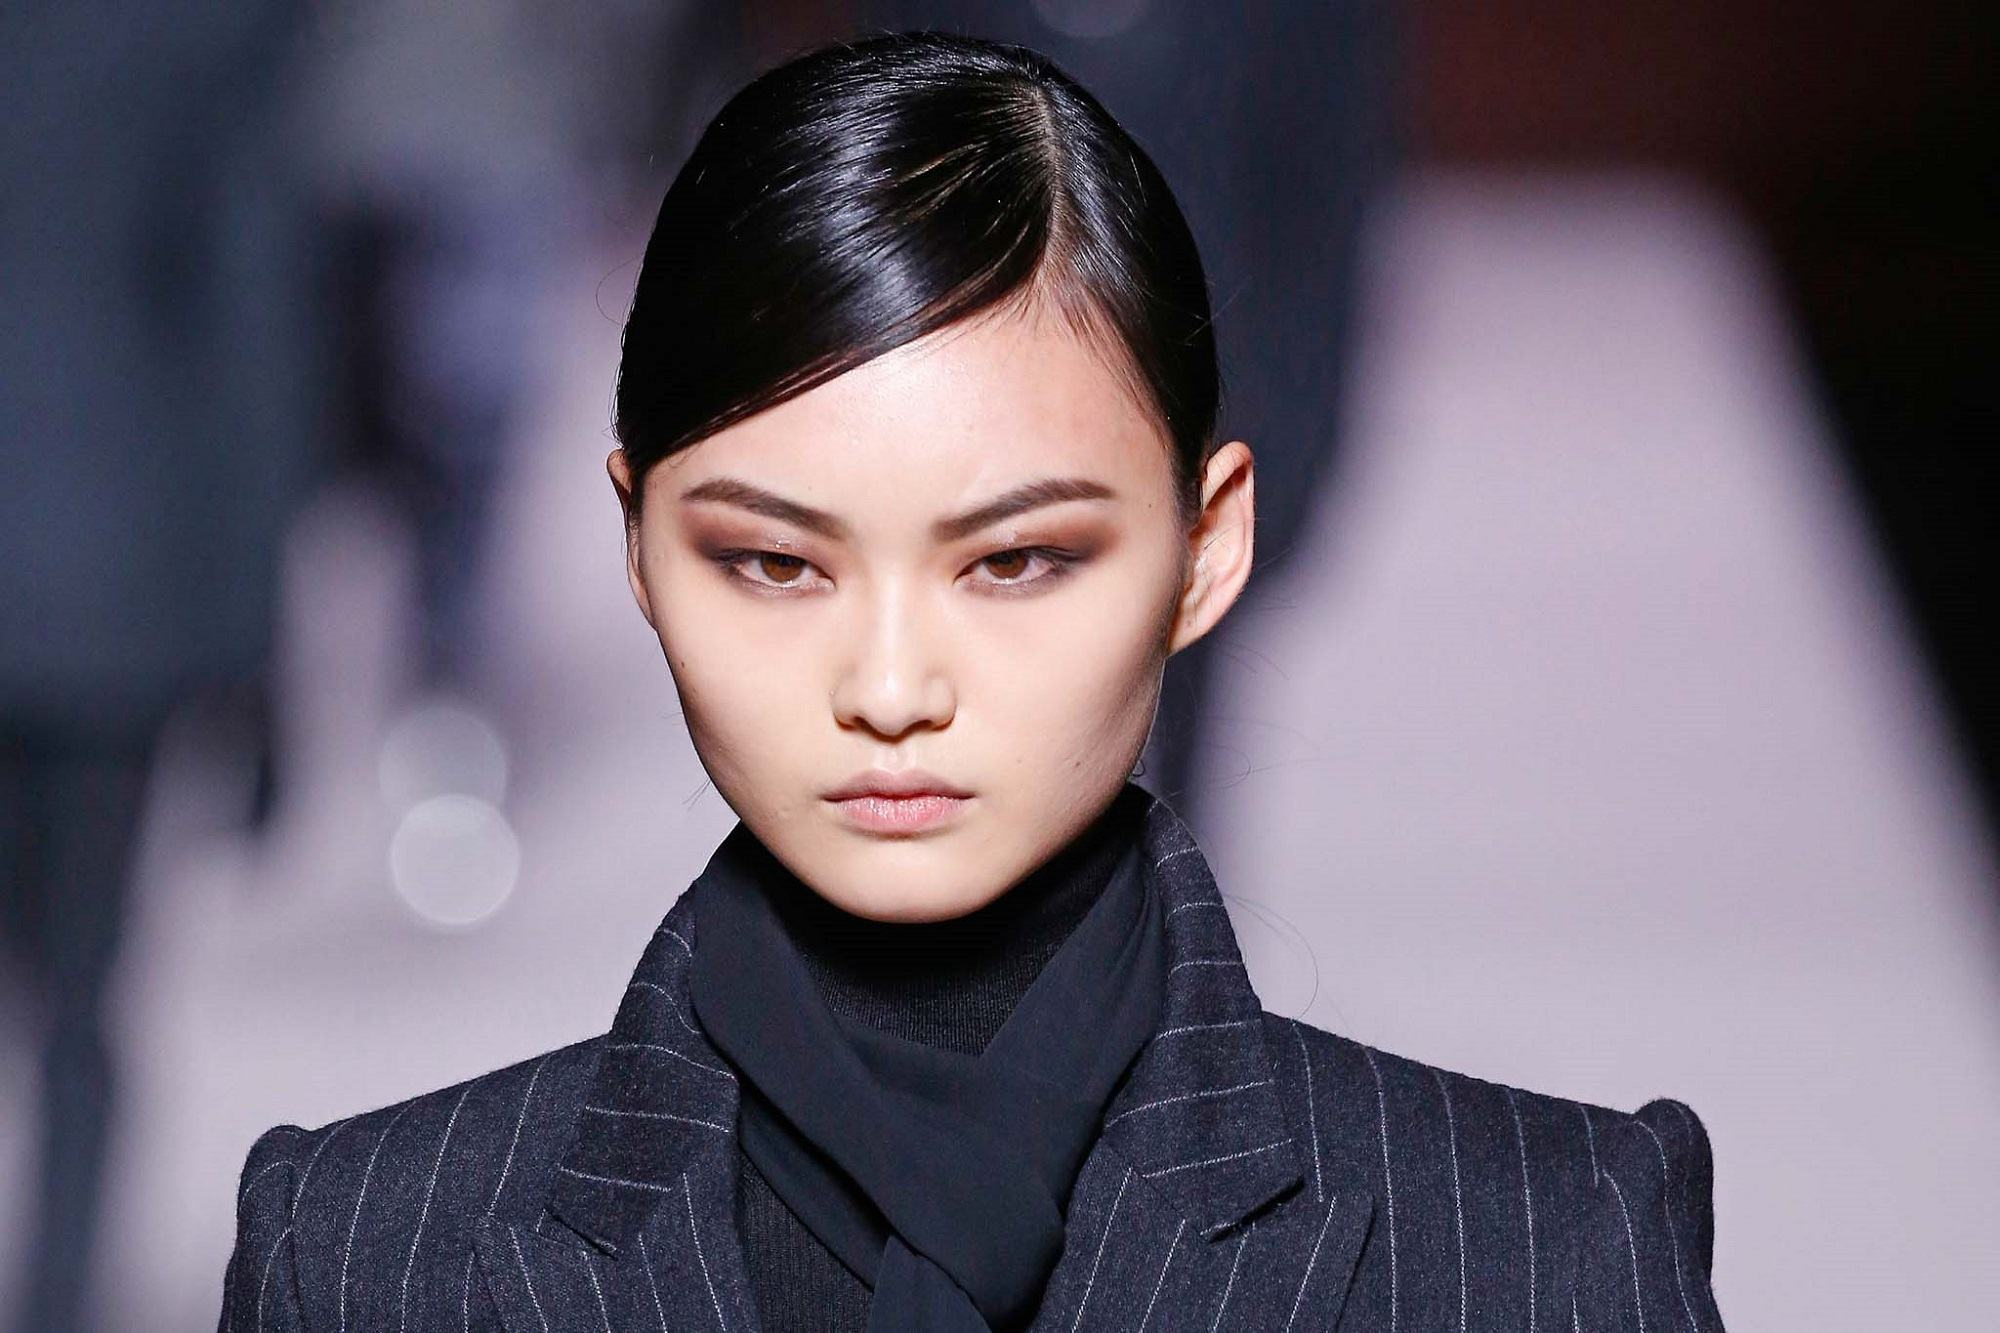 Side sweep hair: Closeup of an Asian woman with black hair with a deep side part wearing dark winter clothes